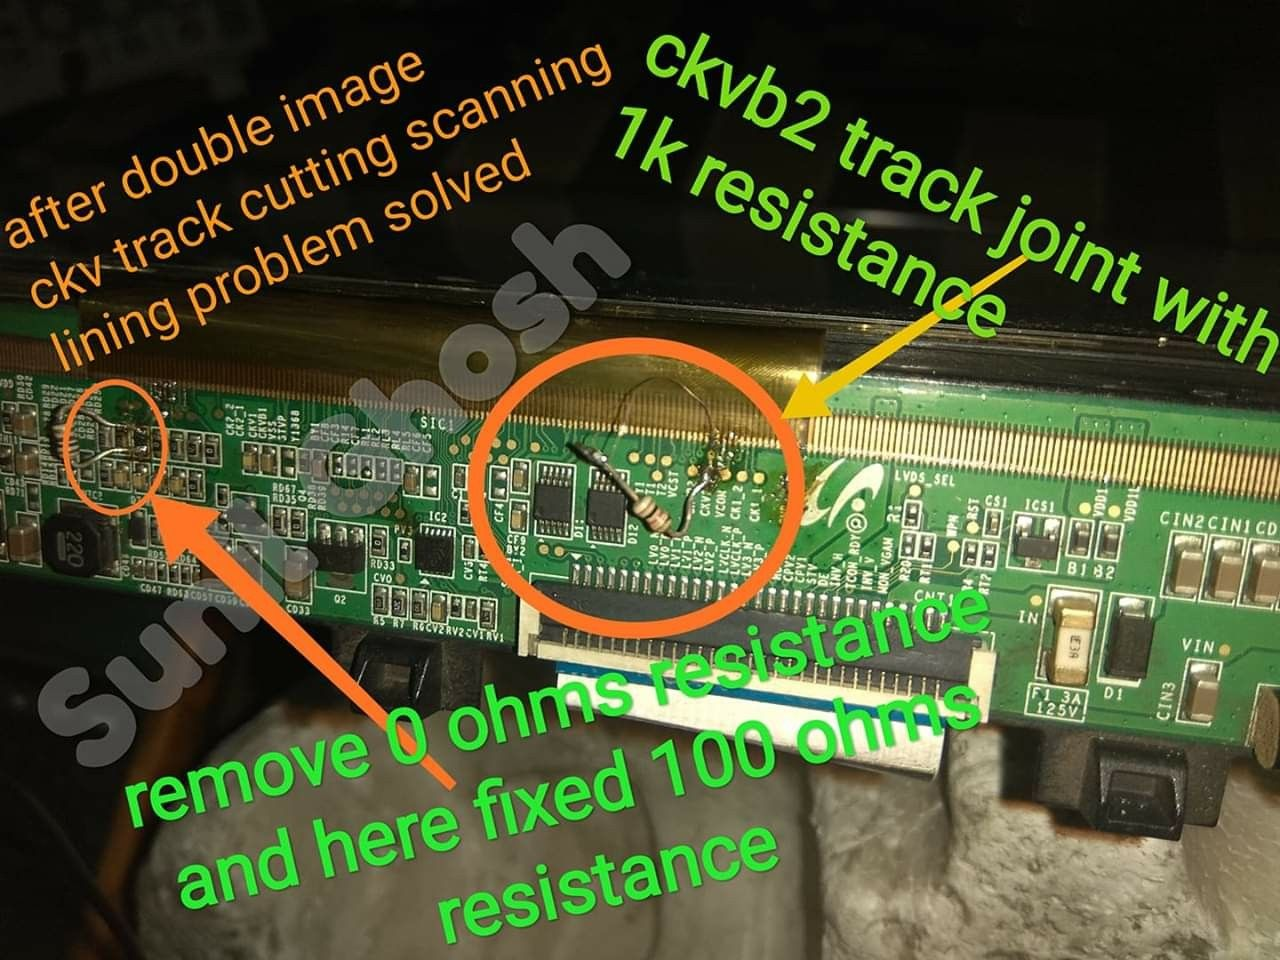 Pin by ccmb cavin on modification | Sony led tv, Led tv ...